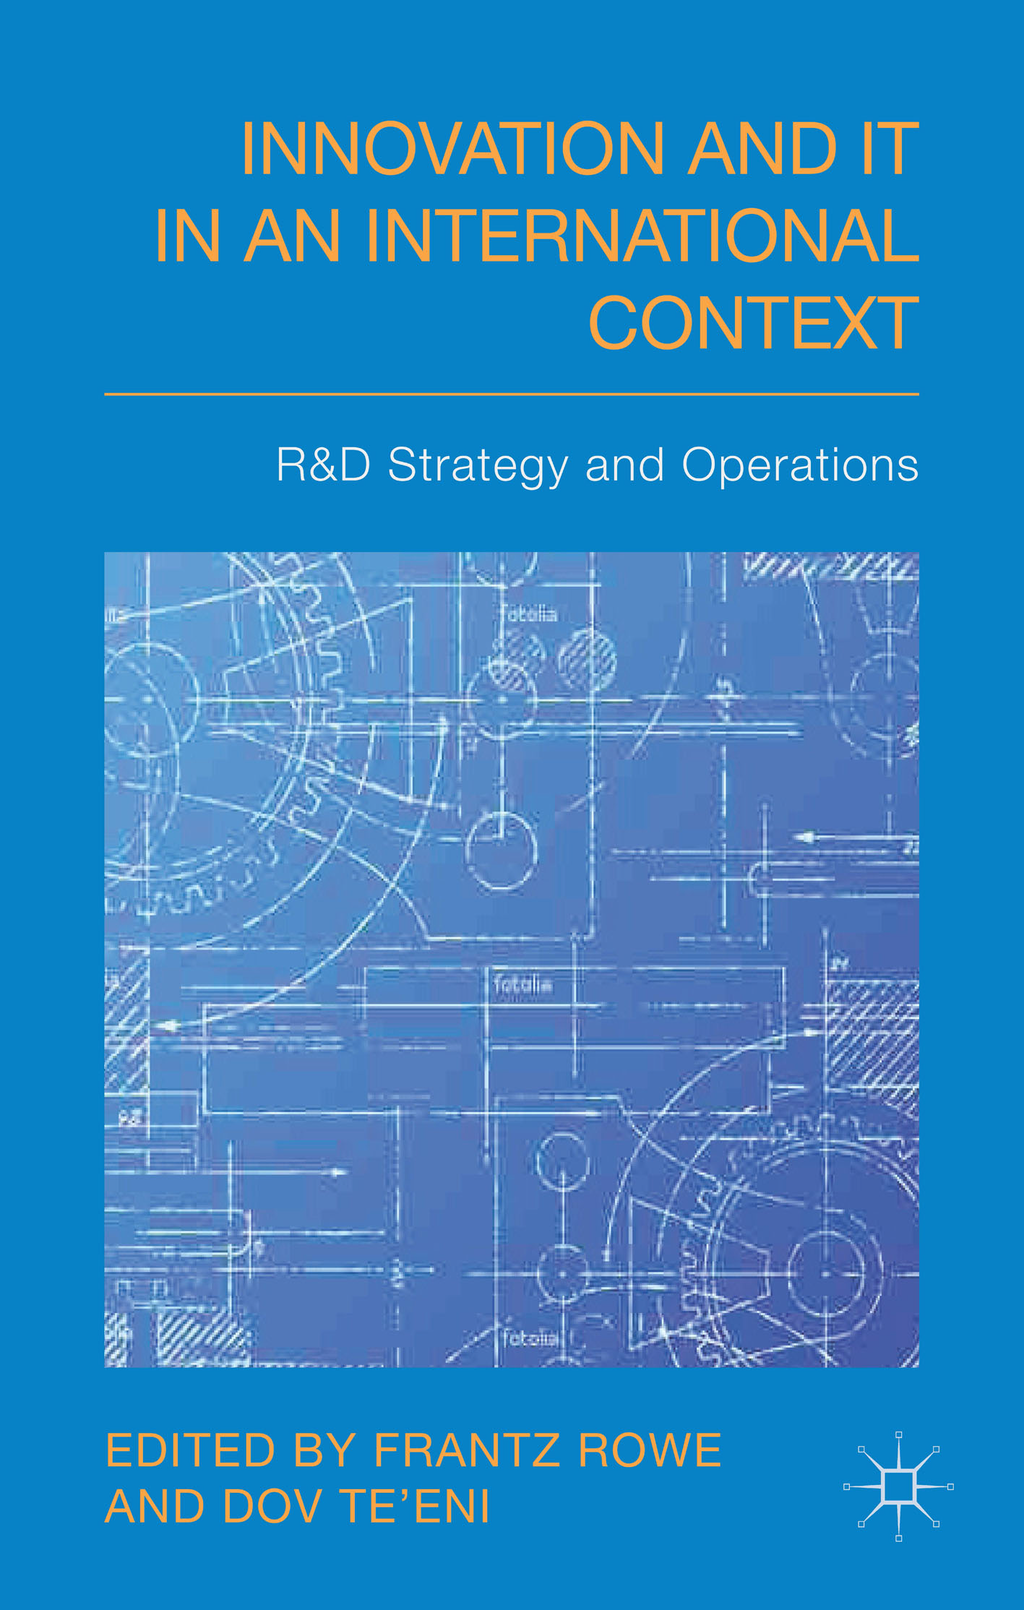 Innovation and IT in an International Context R&D strategy and operations